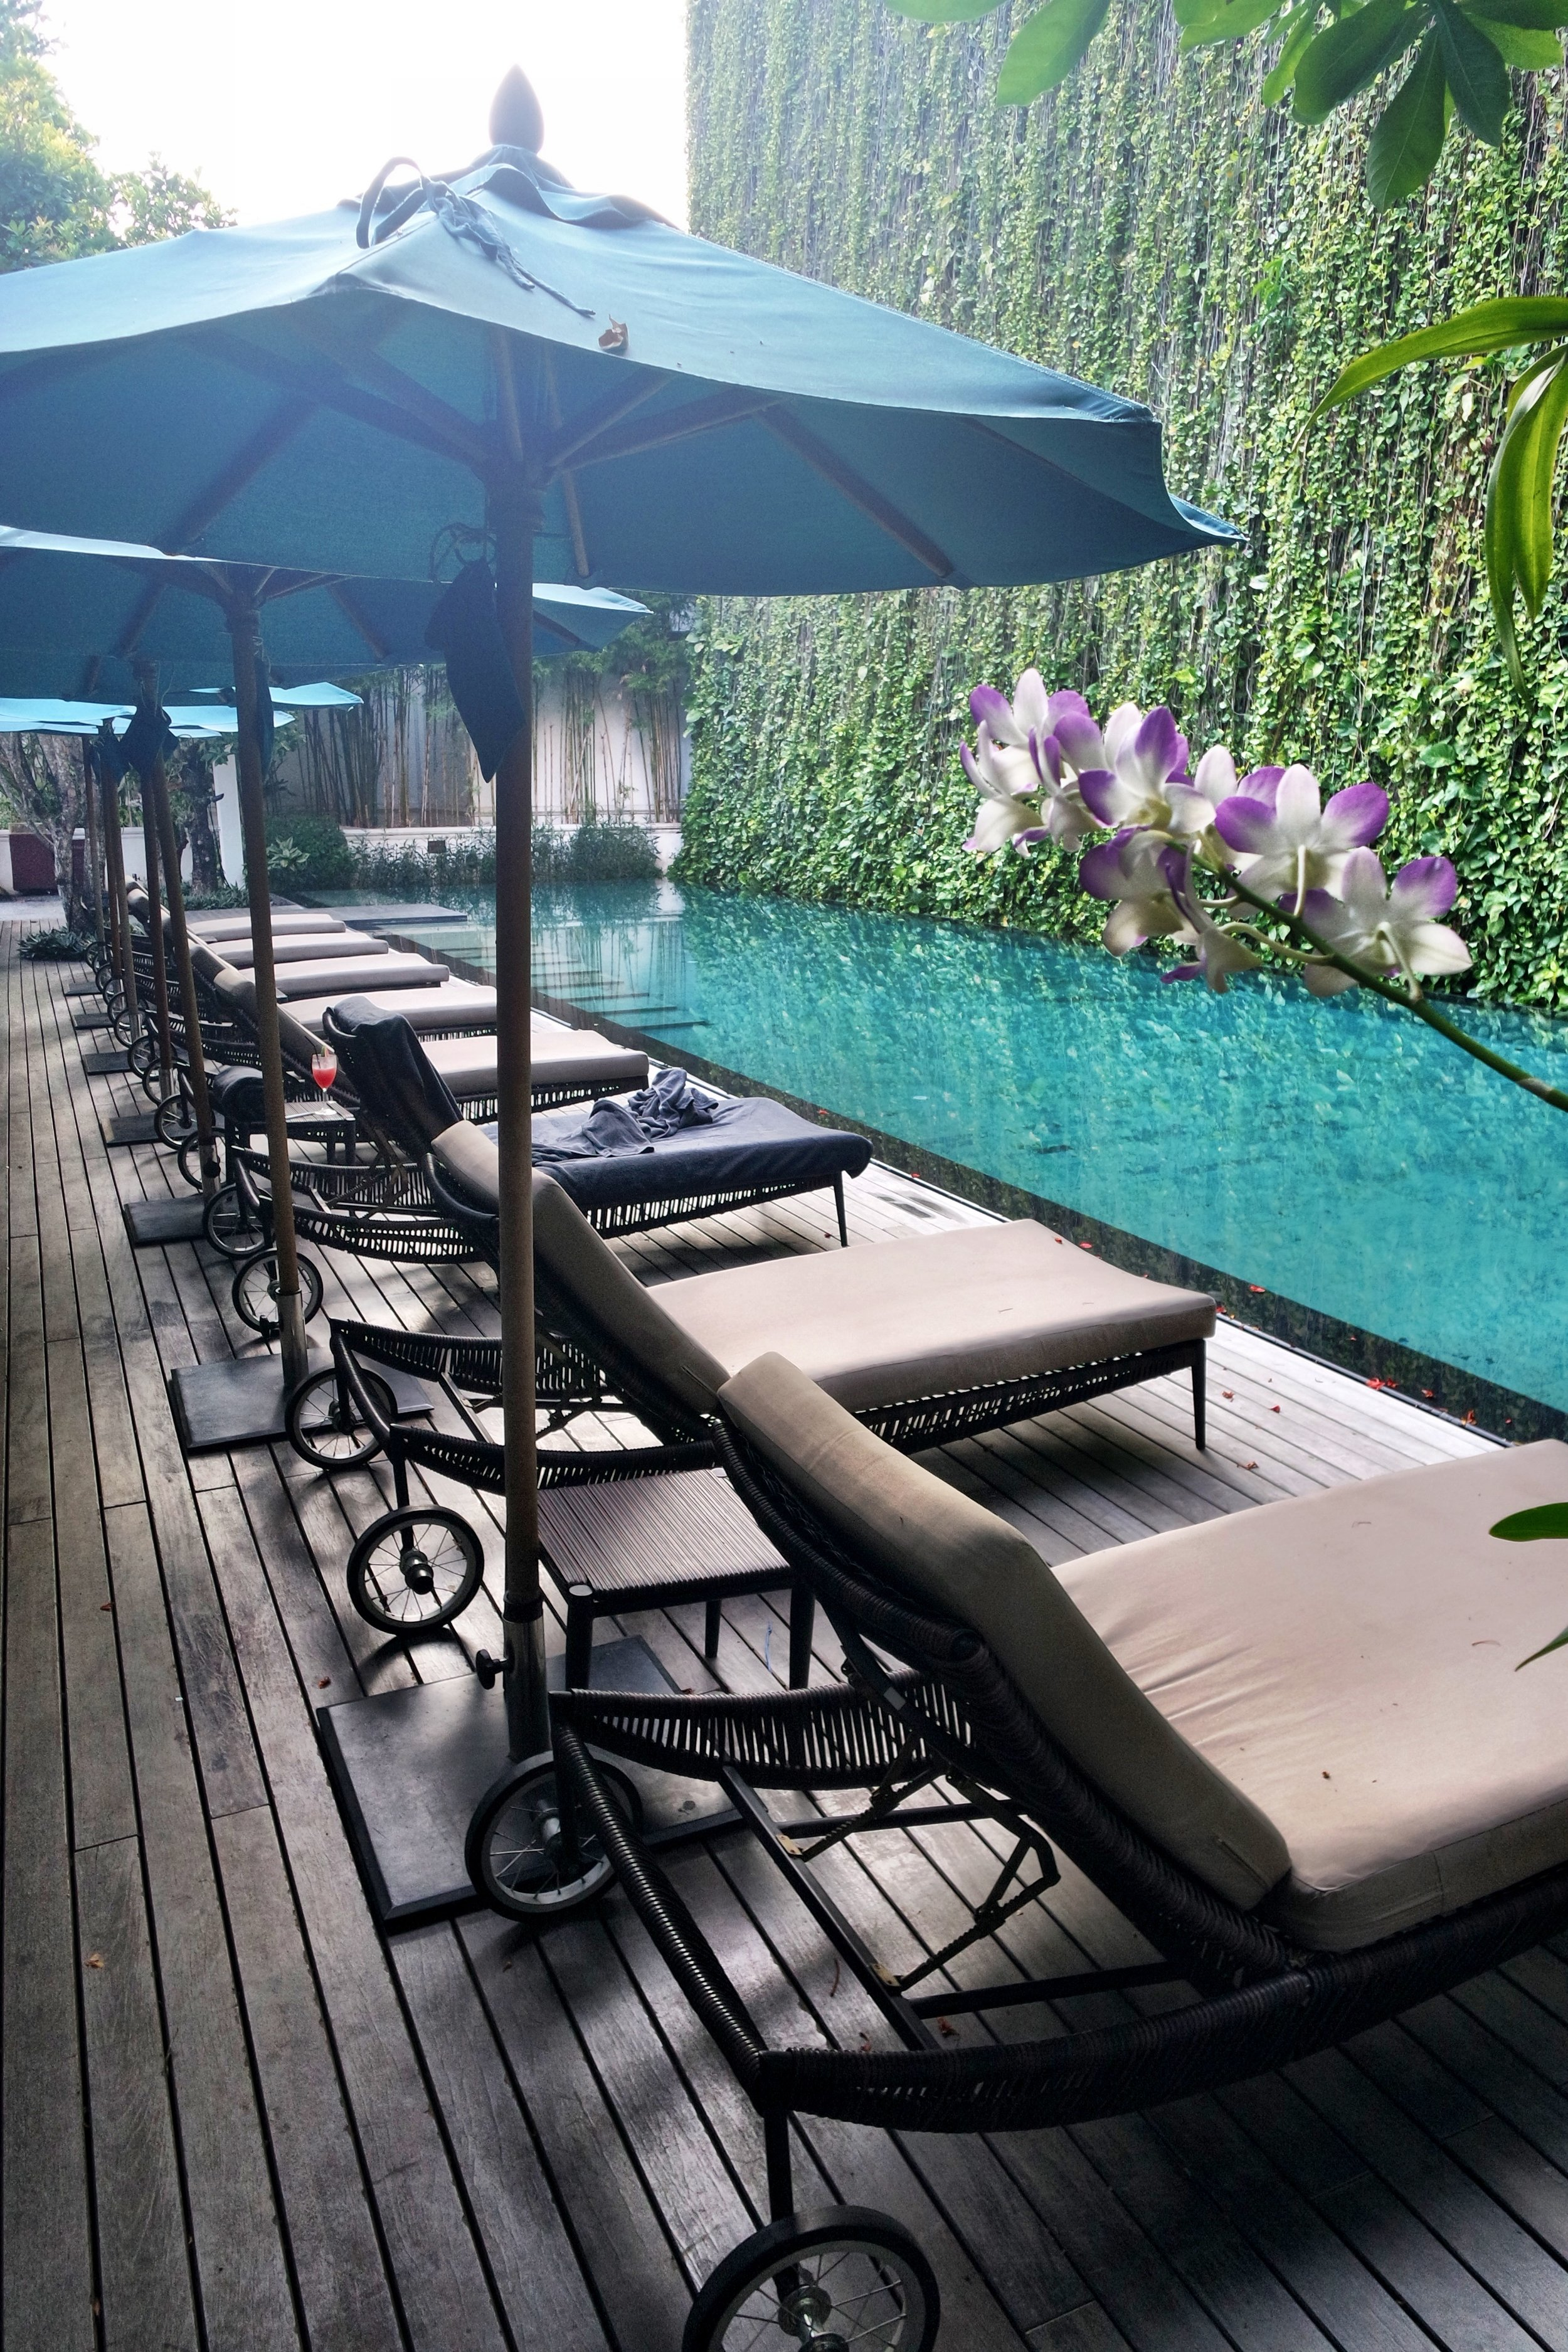 A dramatic five-story living wall of climbing green vines cleverly obscures the view of the world beyond the hotel walls. If you want to cool off, take a dip in the sapphire blue pool beneath